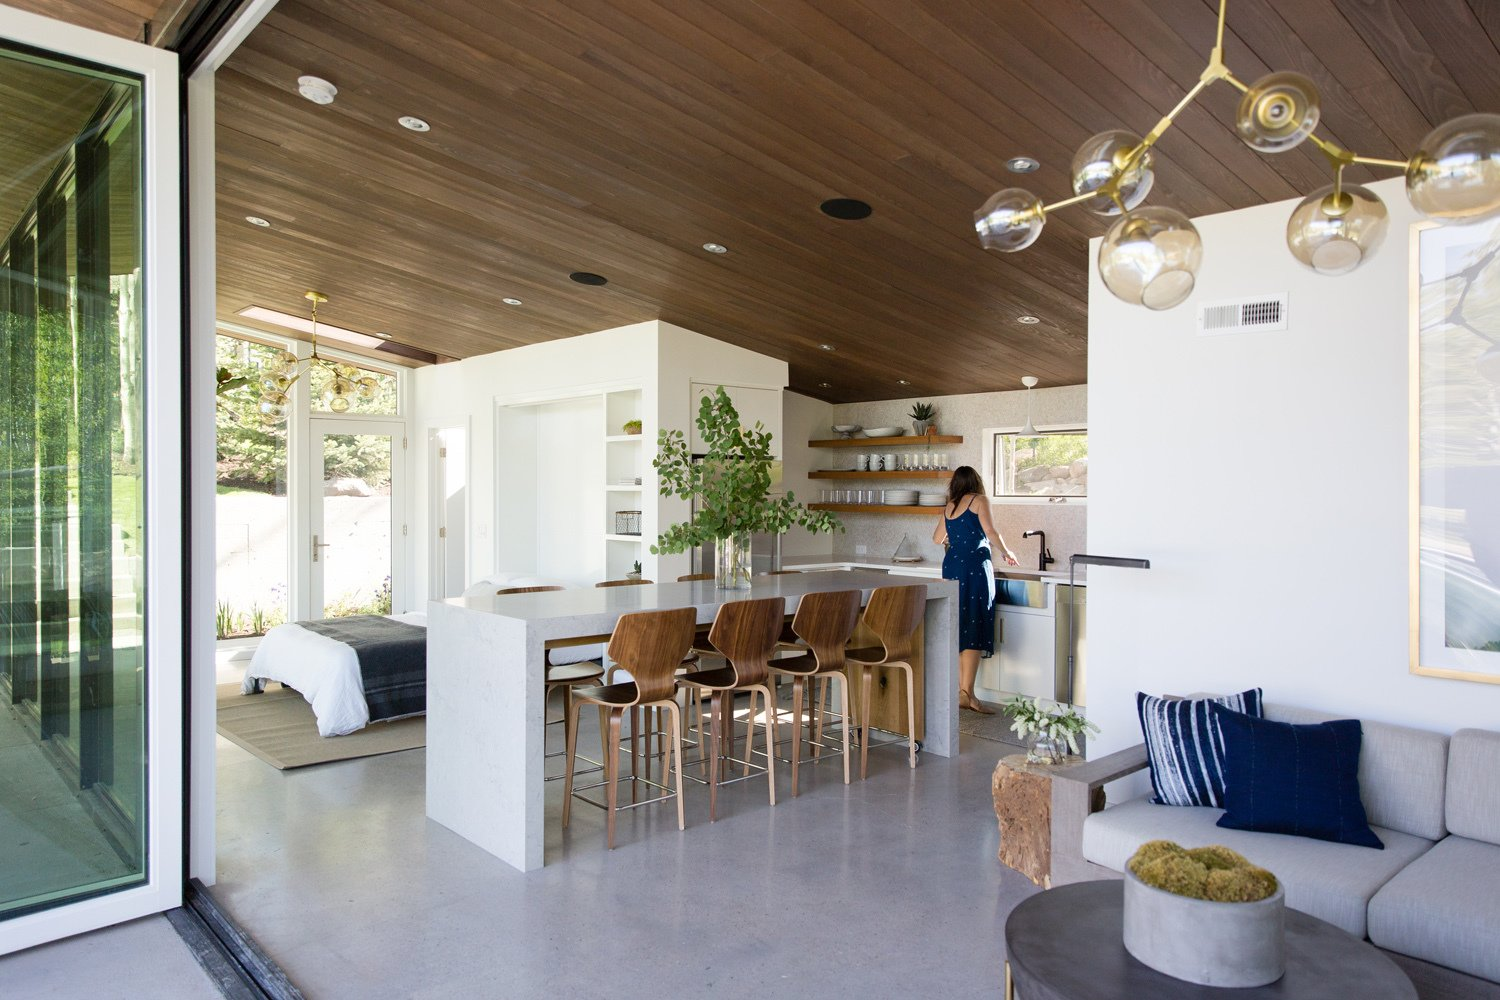 Dining Room, Recessed Lighting, Stools, Ceiling Lighting, Concrete Floor, and Table Clean, simple colors allow wood tones to glow, tying back to the outdoor environment.  Photo 8 of 16 in This Can-Do Pool House Cleverly Goes From Private to Party Mode from Modern Mountain Pool House